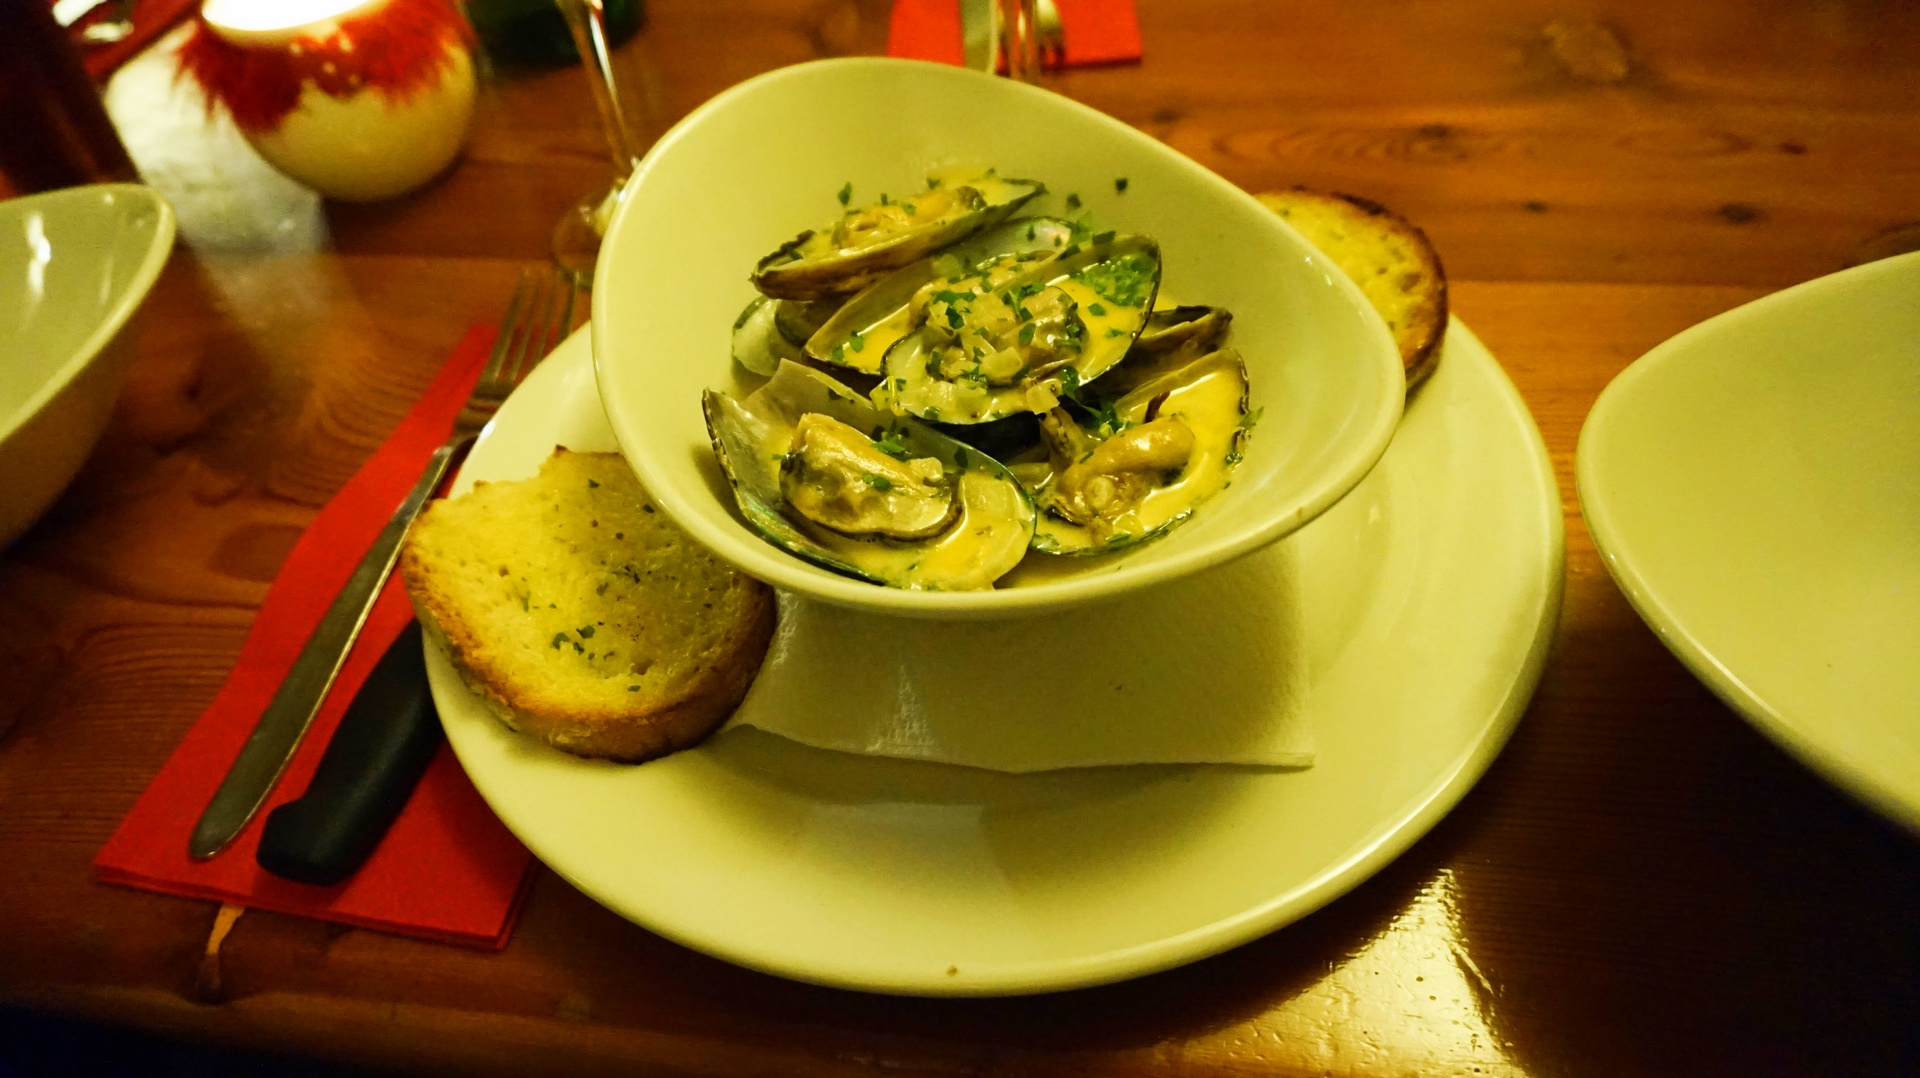 sway the way malta pizzeria damianos mussels 1